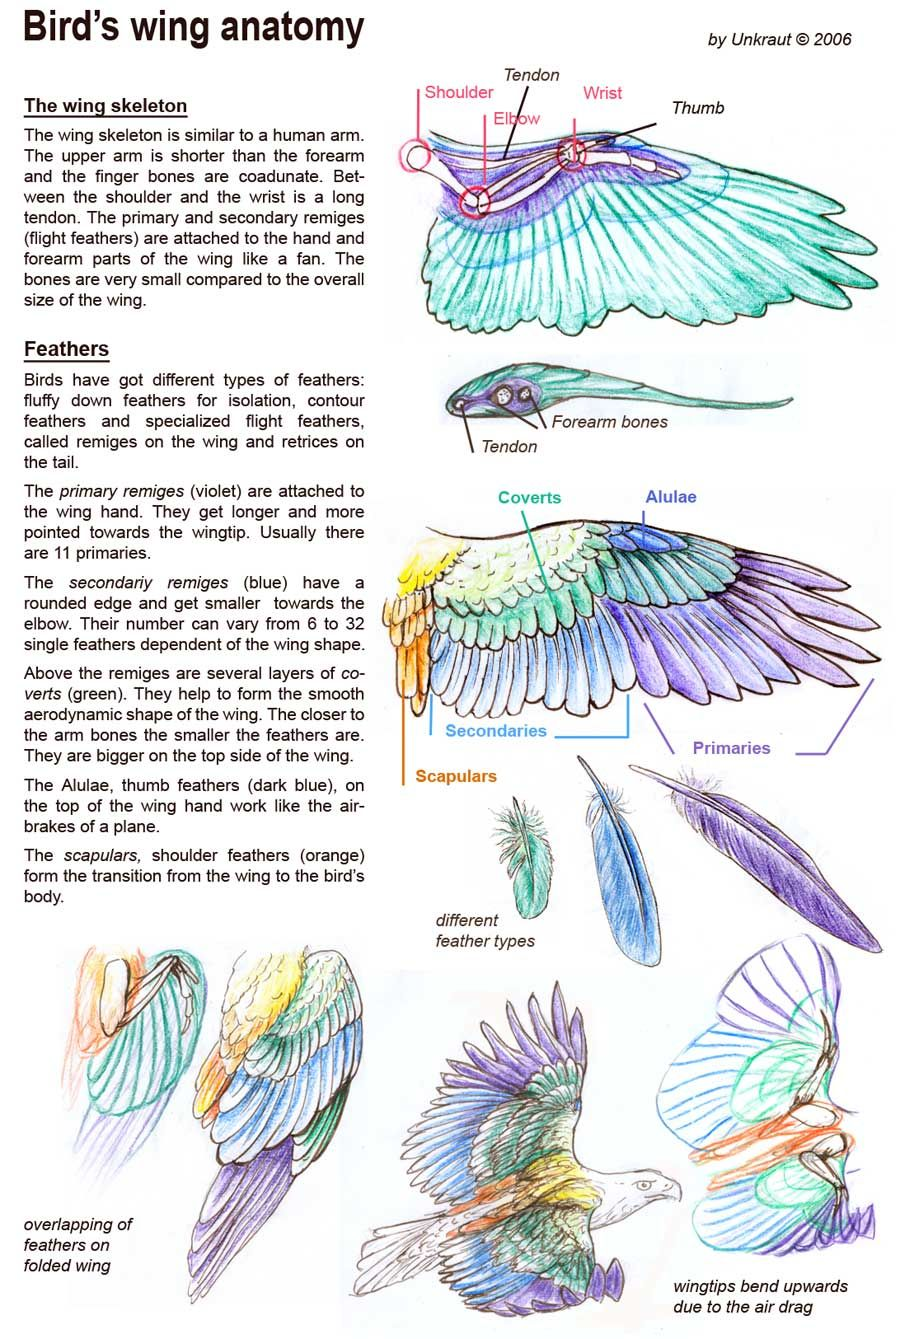 Bird's wing anatomy skeleton and feather